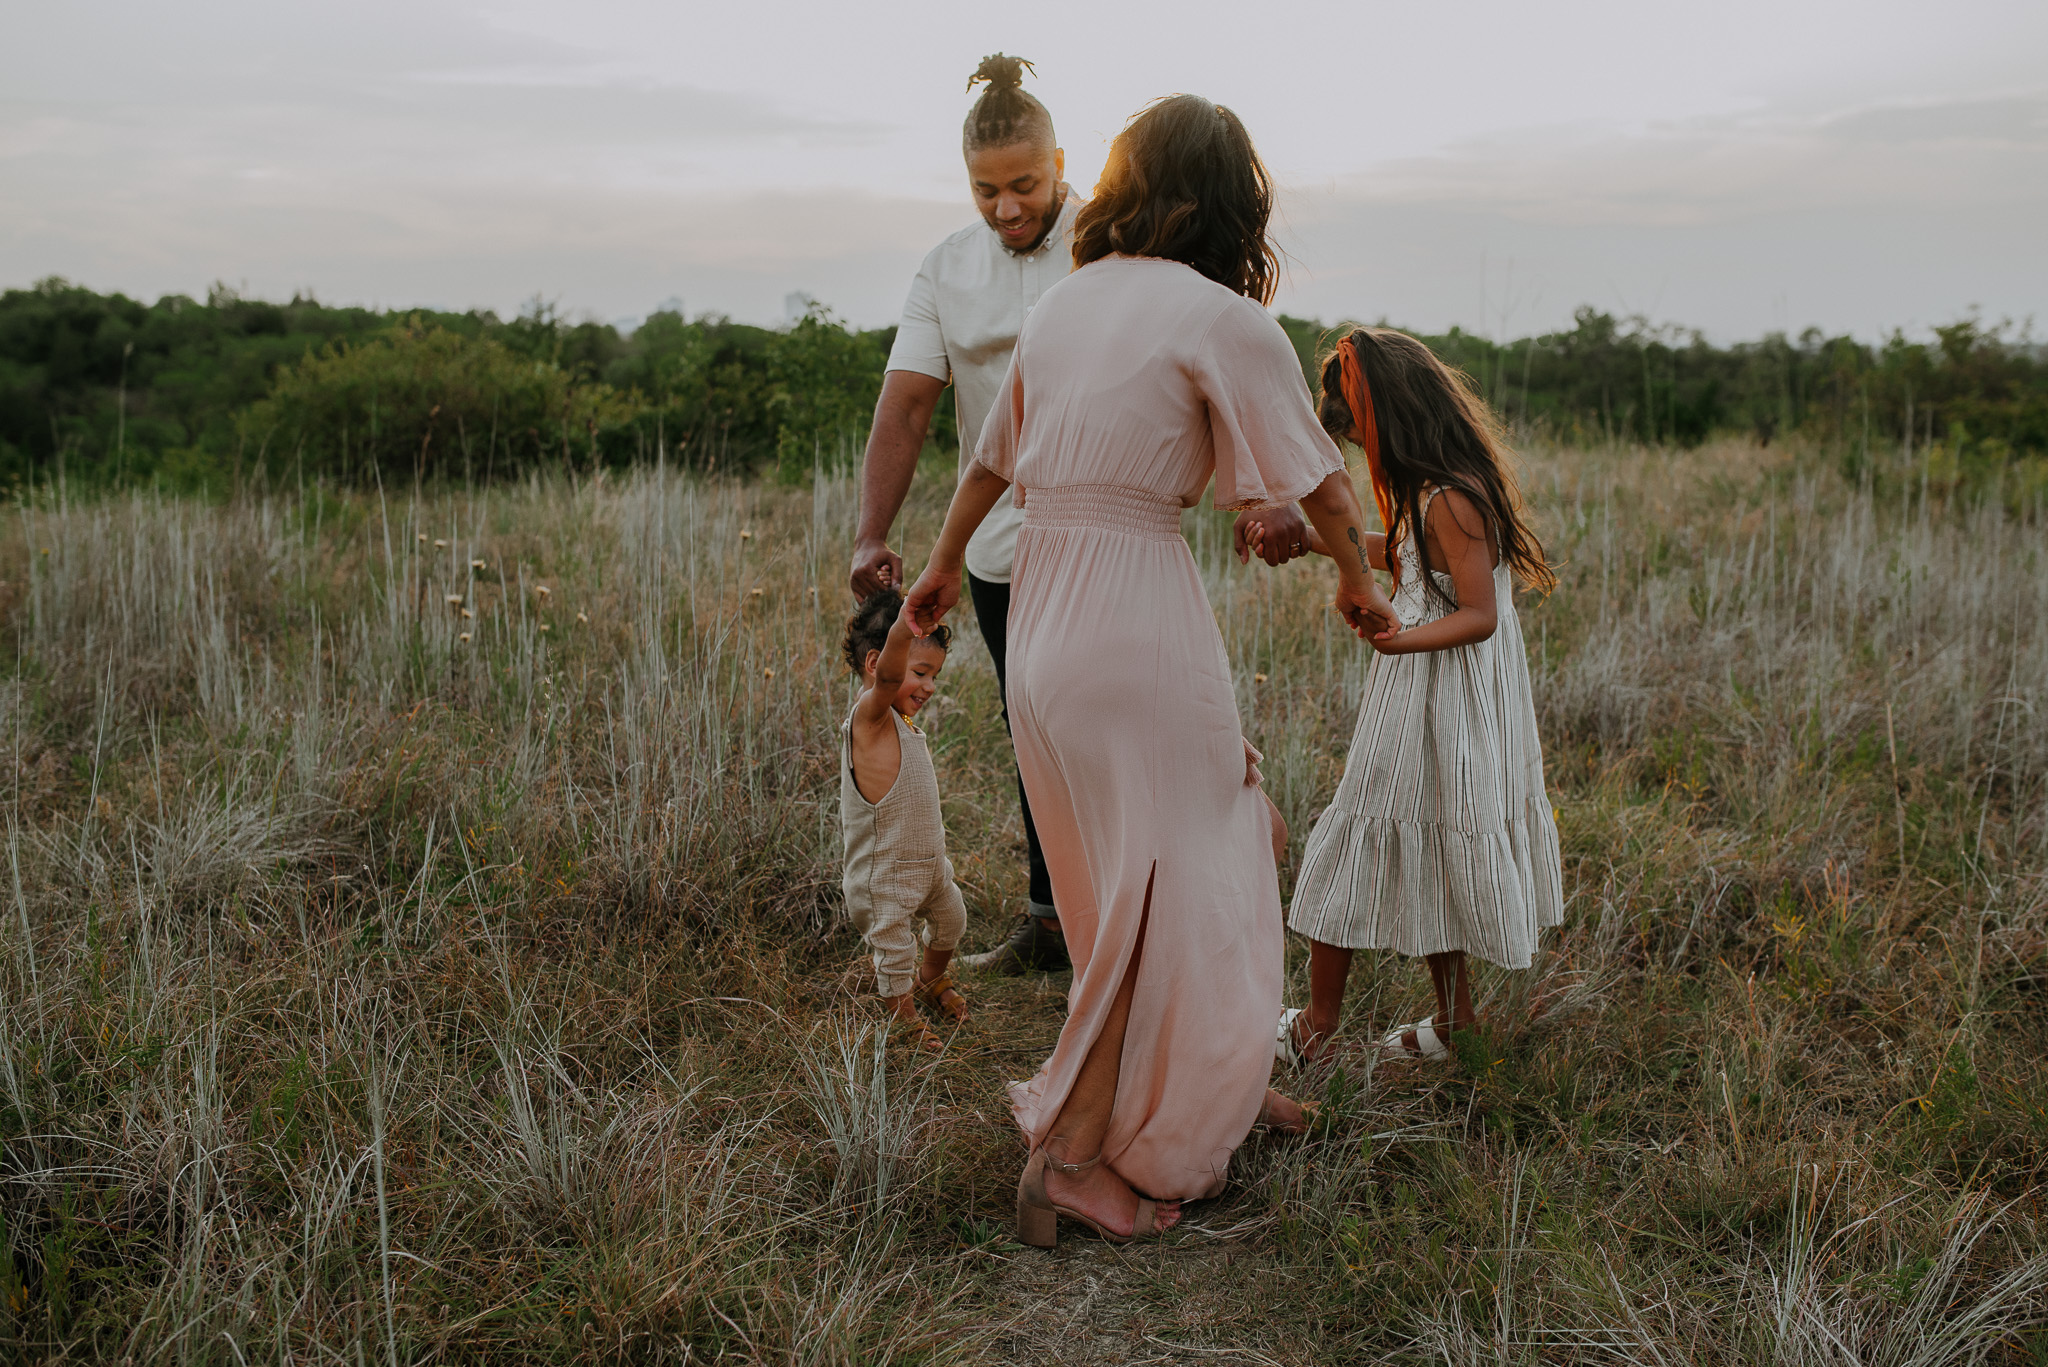 Jessi-marie-photography-dallas-fort-worth-texas-family-photographer-tandy-hills-natural-area-23